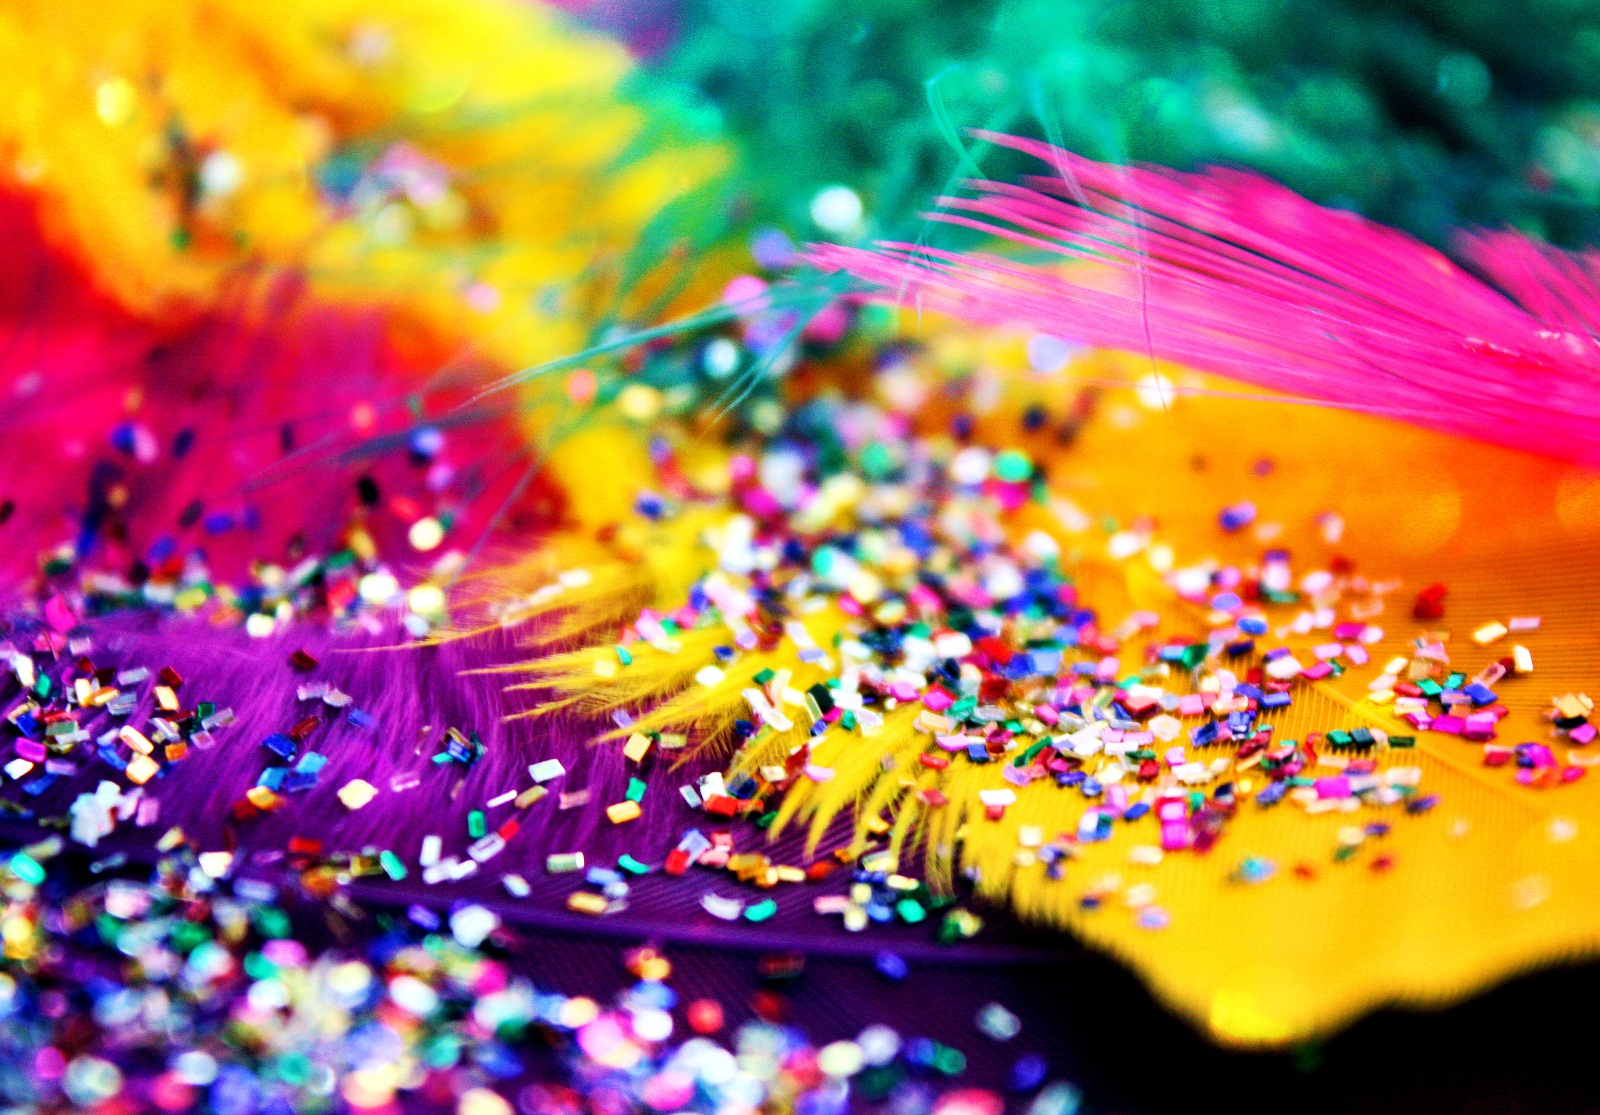 Abstract Beautiful Colorful Wallpaper Colorful 1600x1115